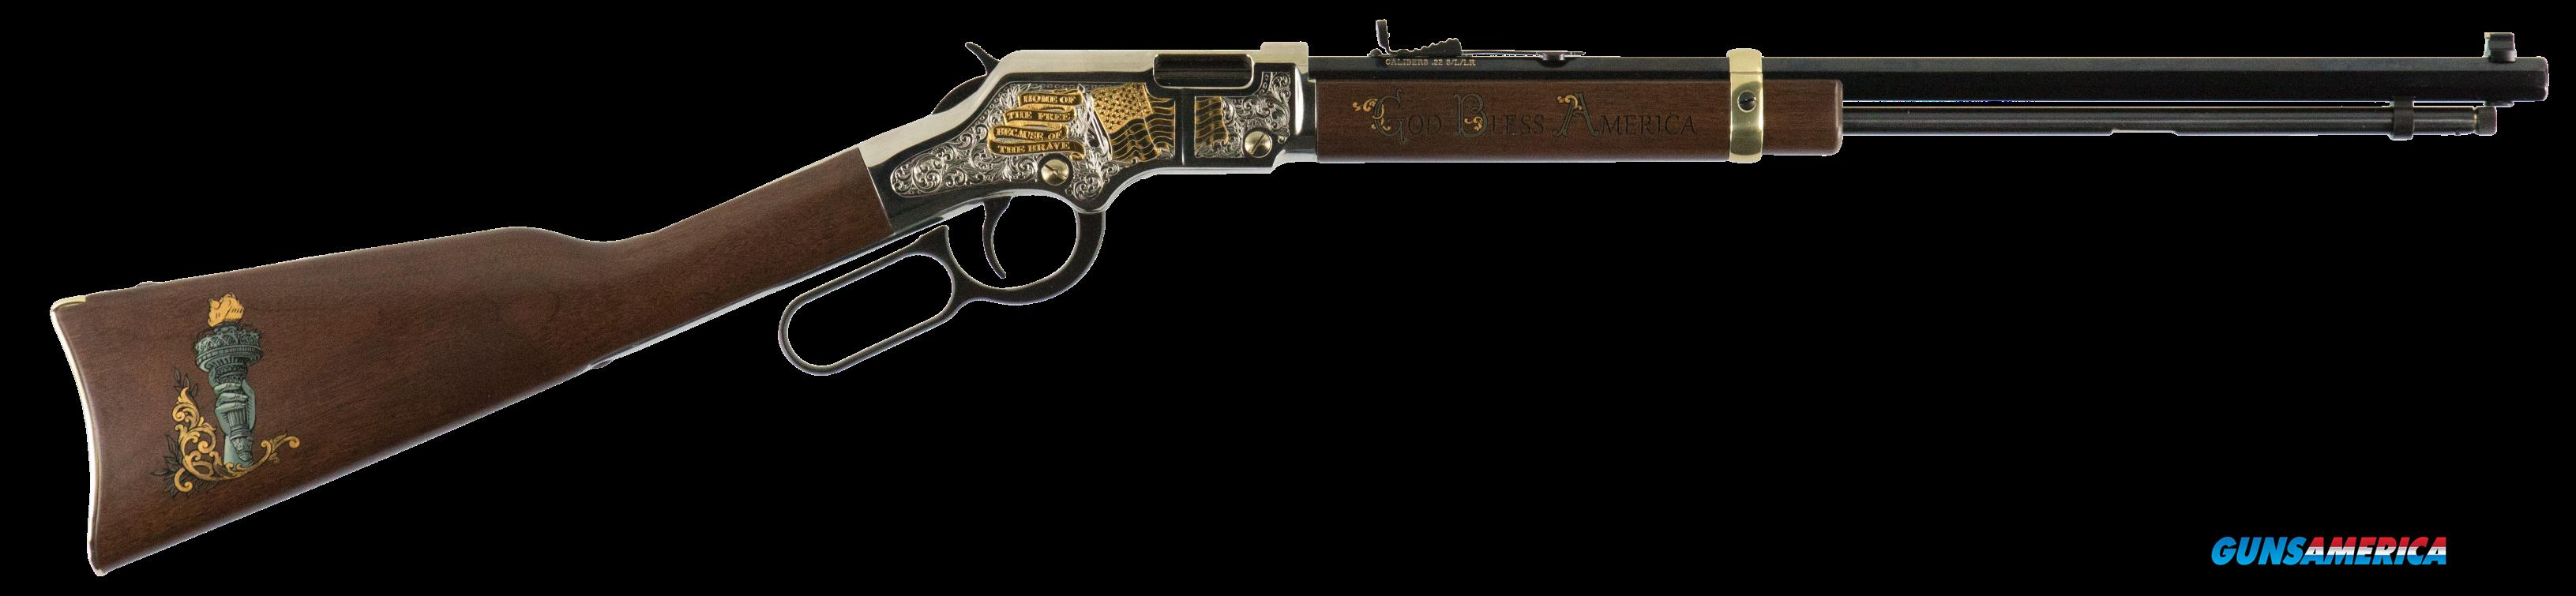 Henry Golden Boy, Henry H004gba   Golden Boy God Bless America  22lr  Guns > Pistols > 1911 Pistol Copies (non-Colt)